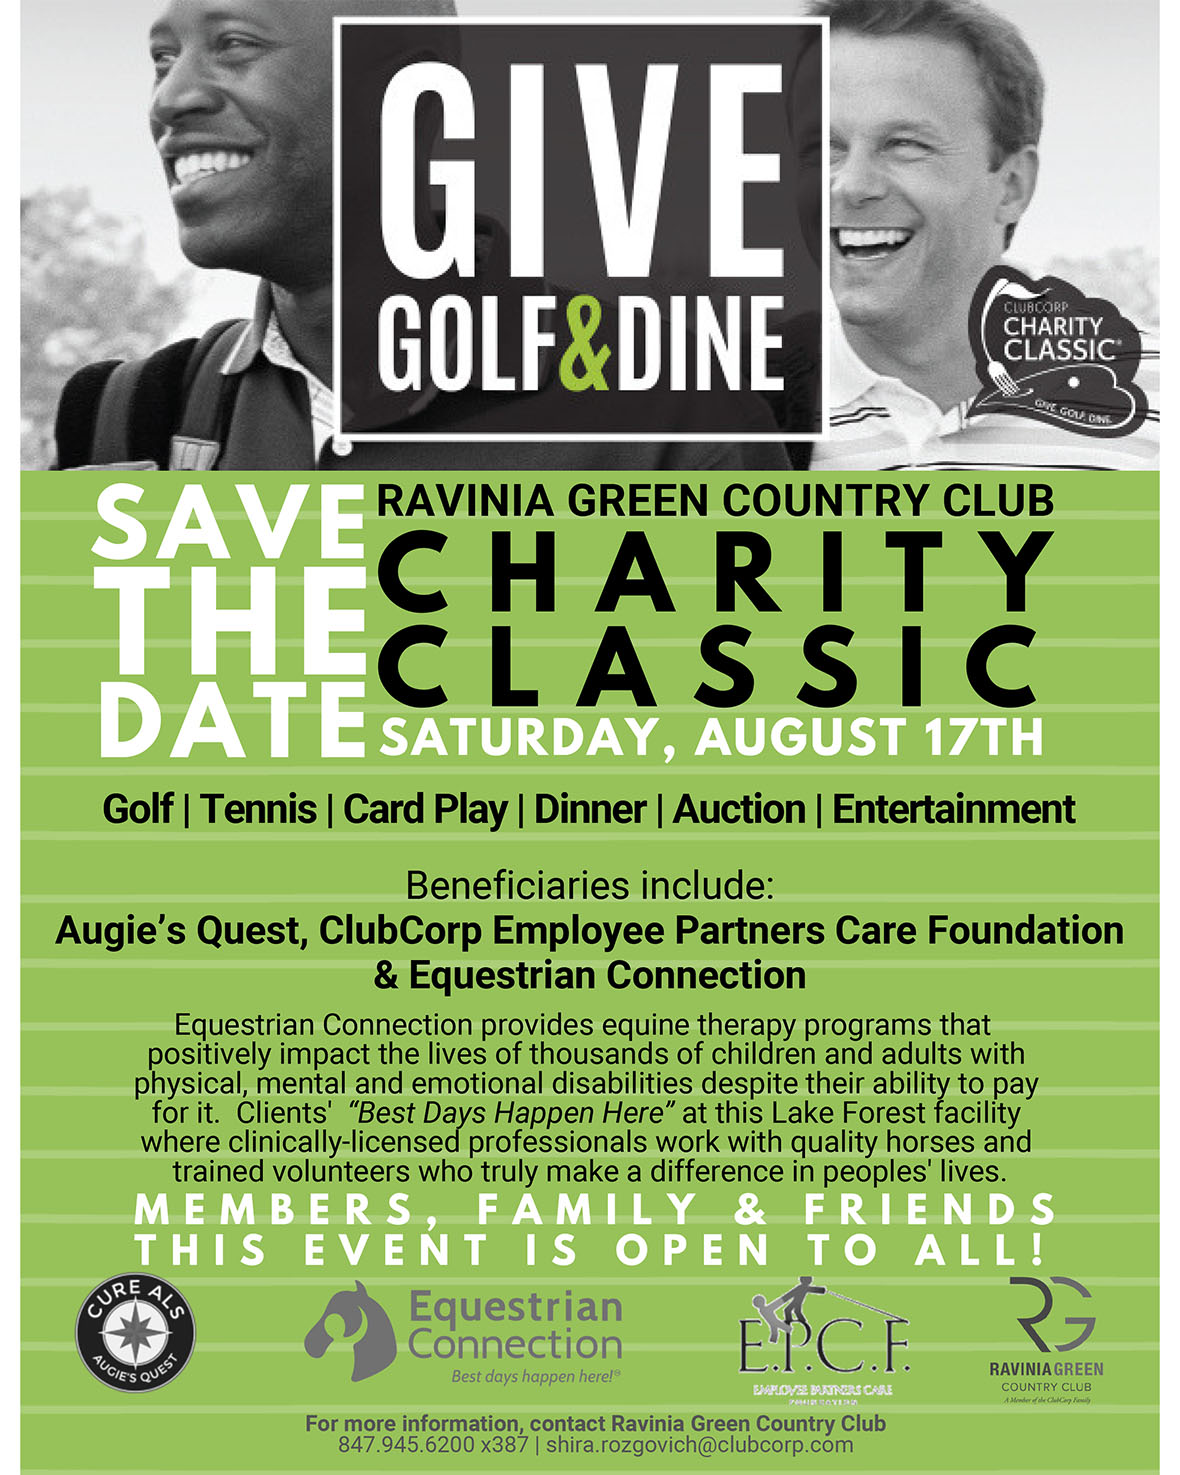 Charity Classic Save the Date (1).jpg